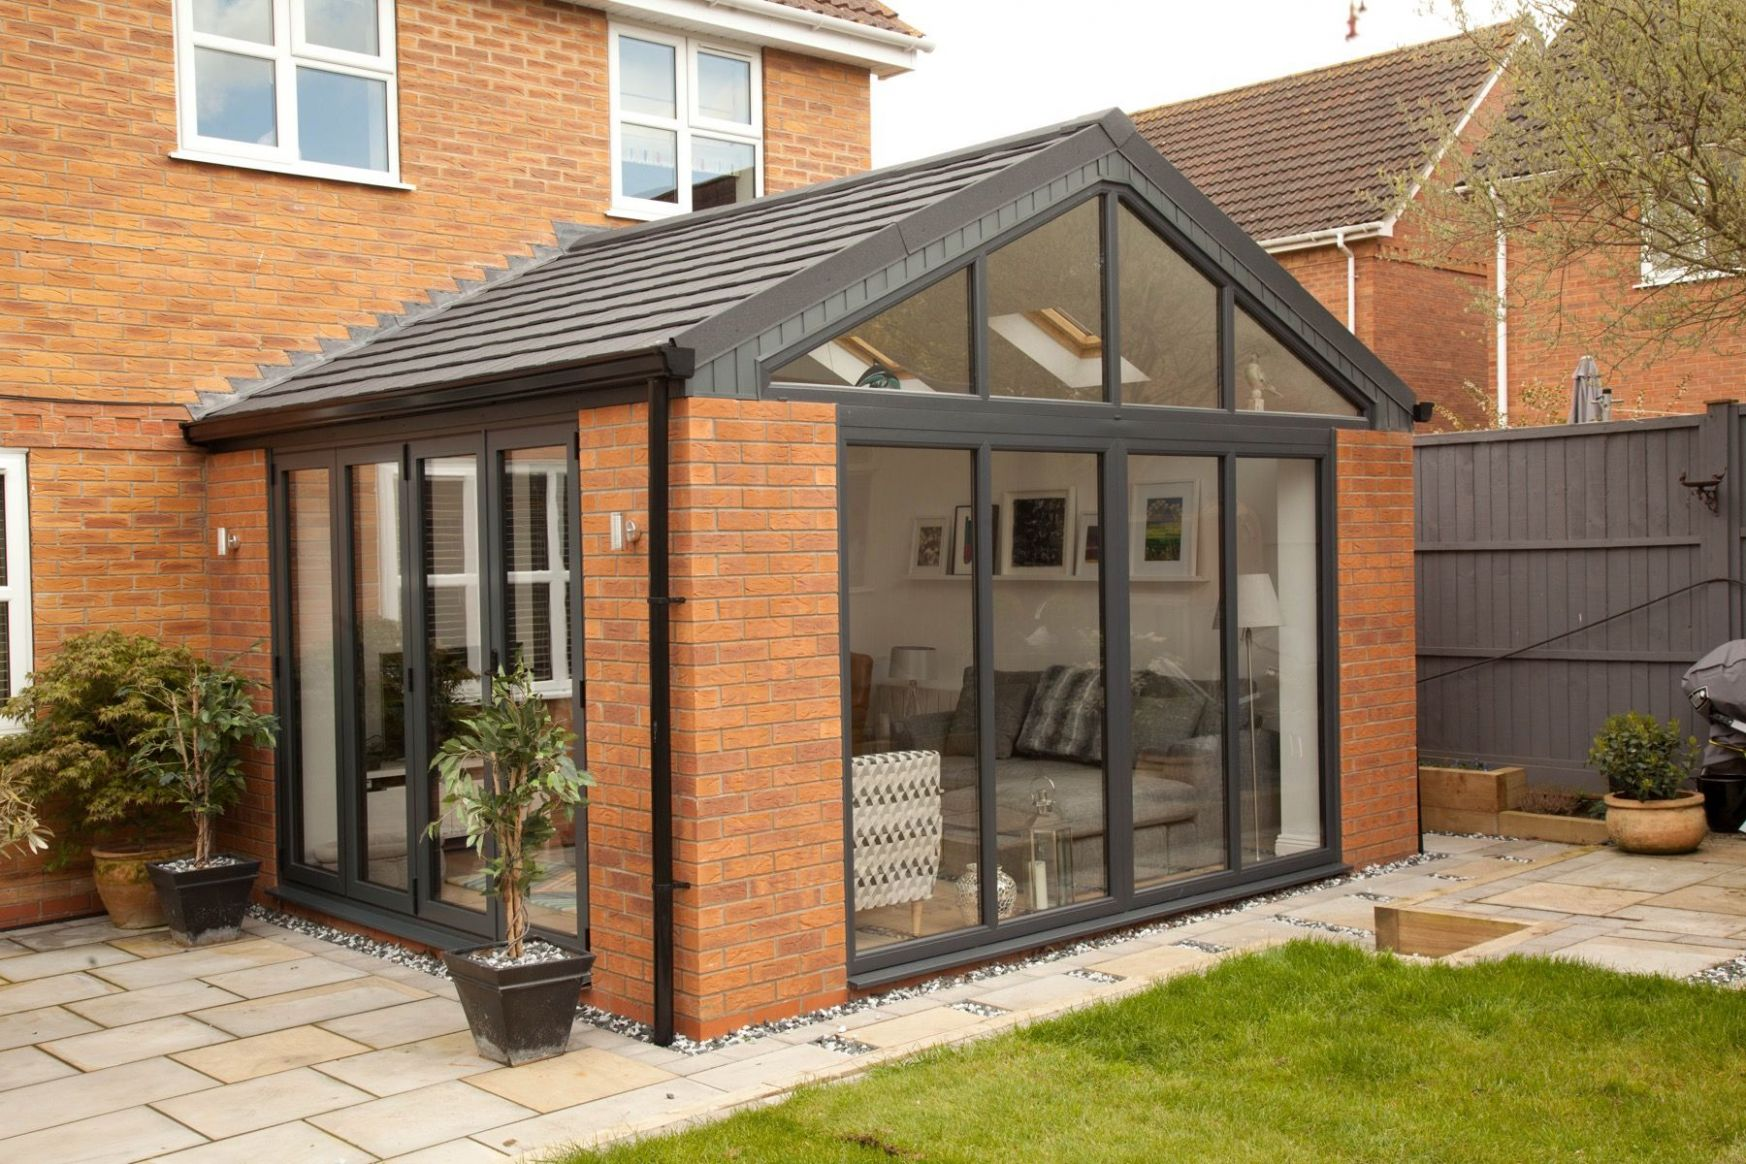 Solid Roof Sunrooms in Hampshire - Buy Now, Pay Later! (With ...